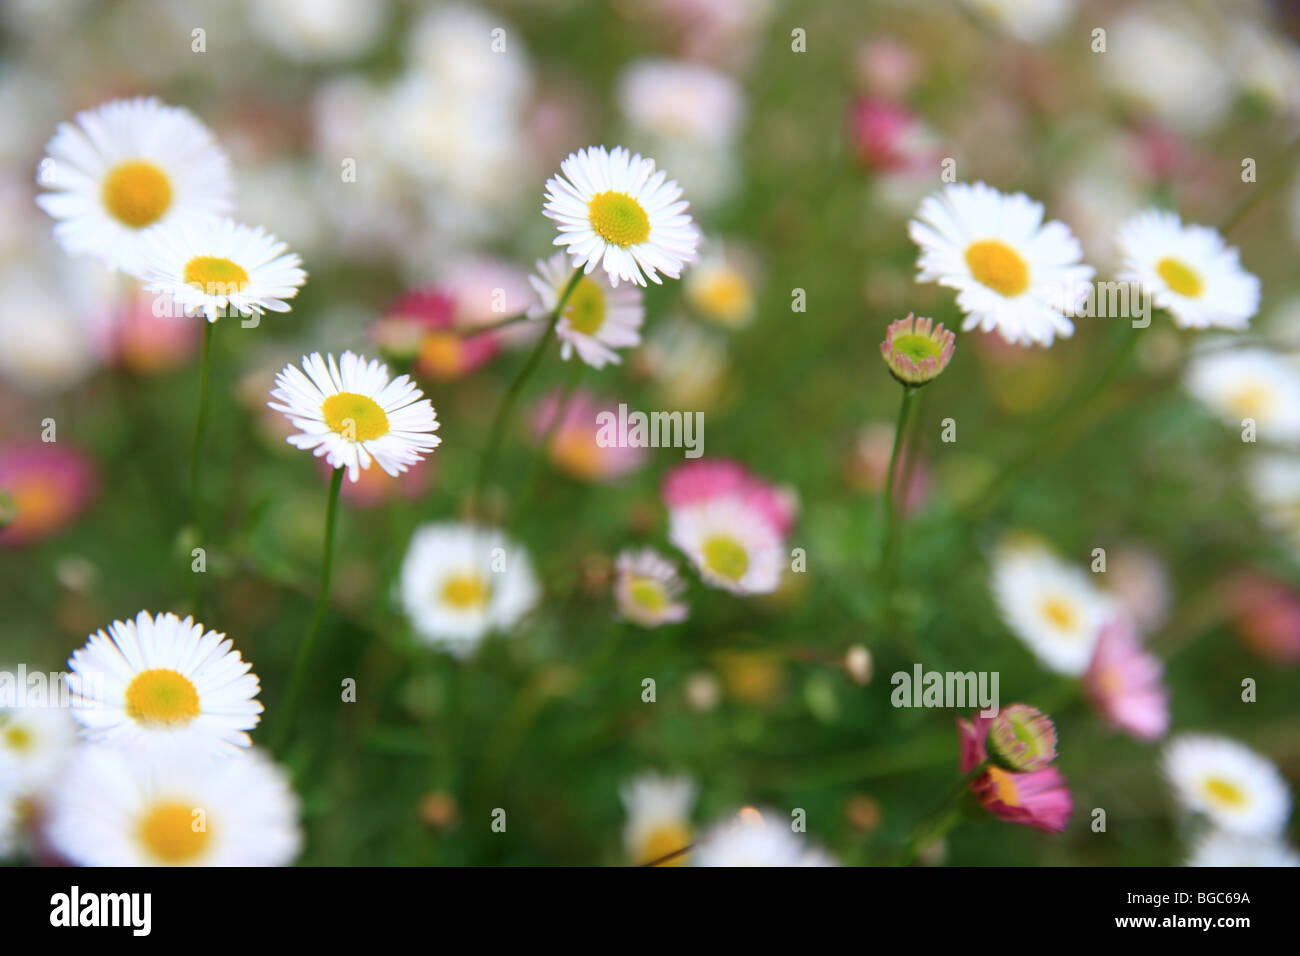 Couvre sol blanc rose daisy fleurs jardin uk photo stock